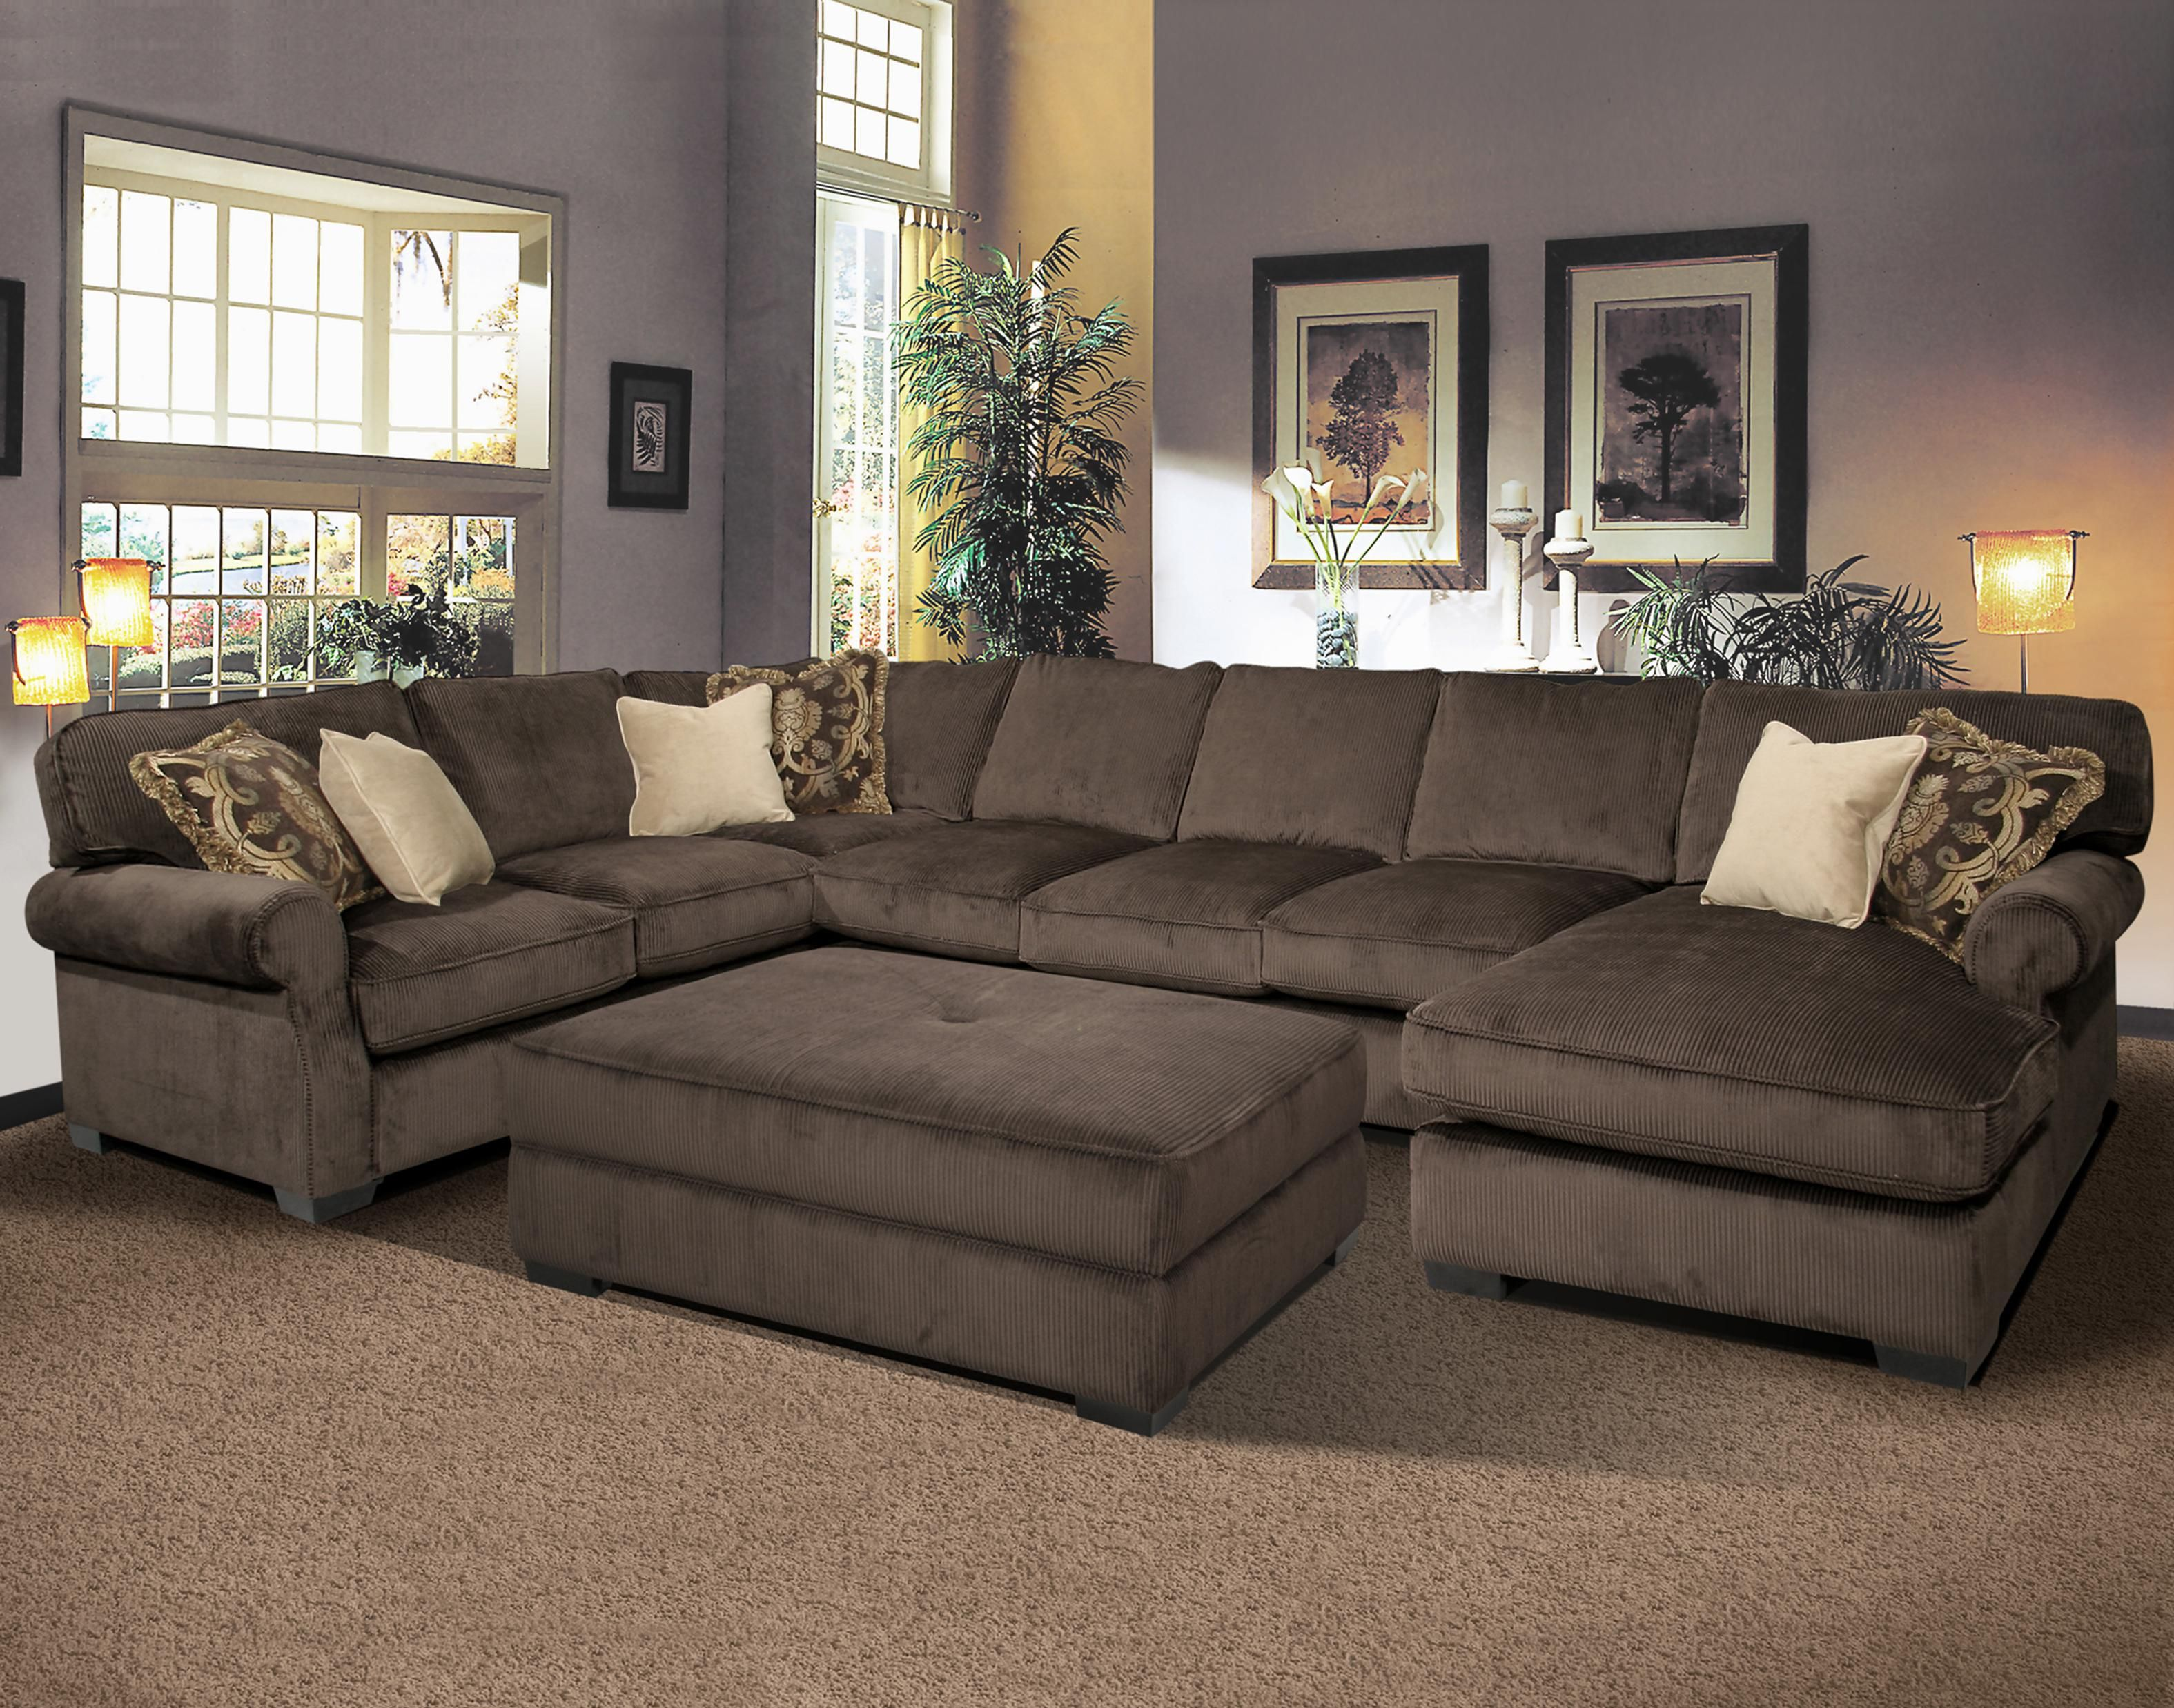 And Comfy Grand Island Large 7 Seat Sectional Sofa With Right Side Chaise By